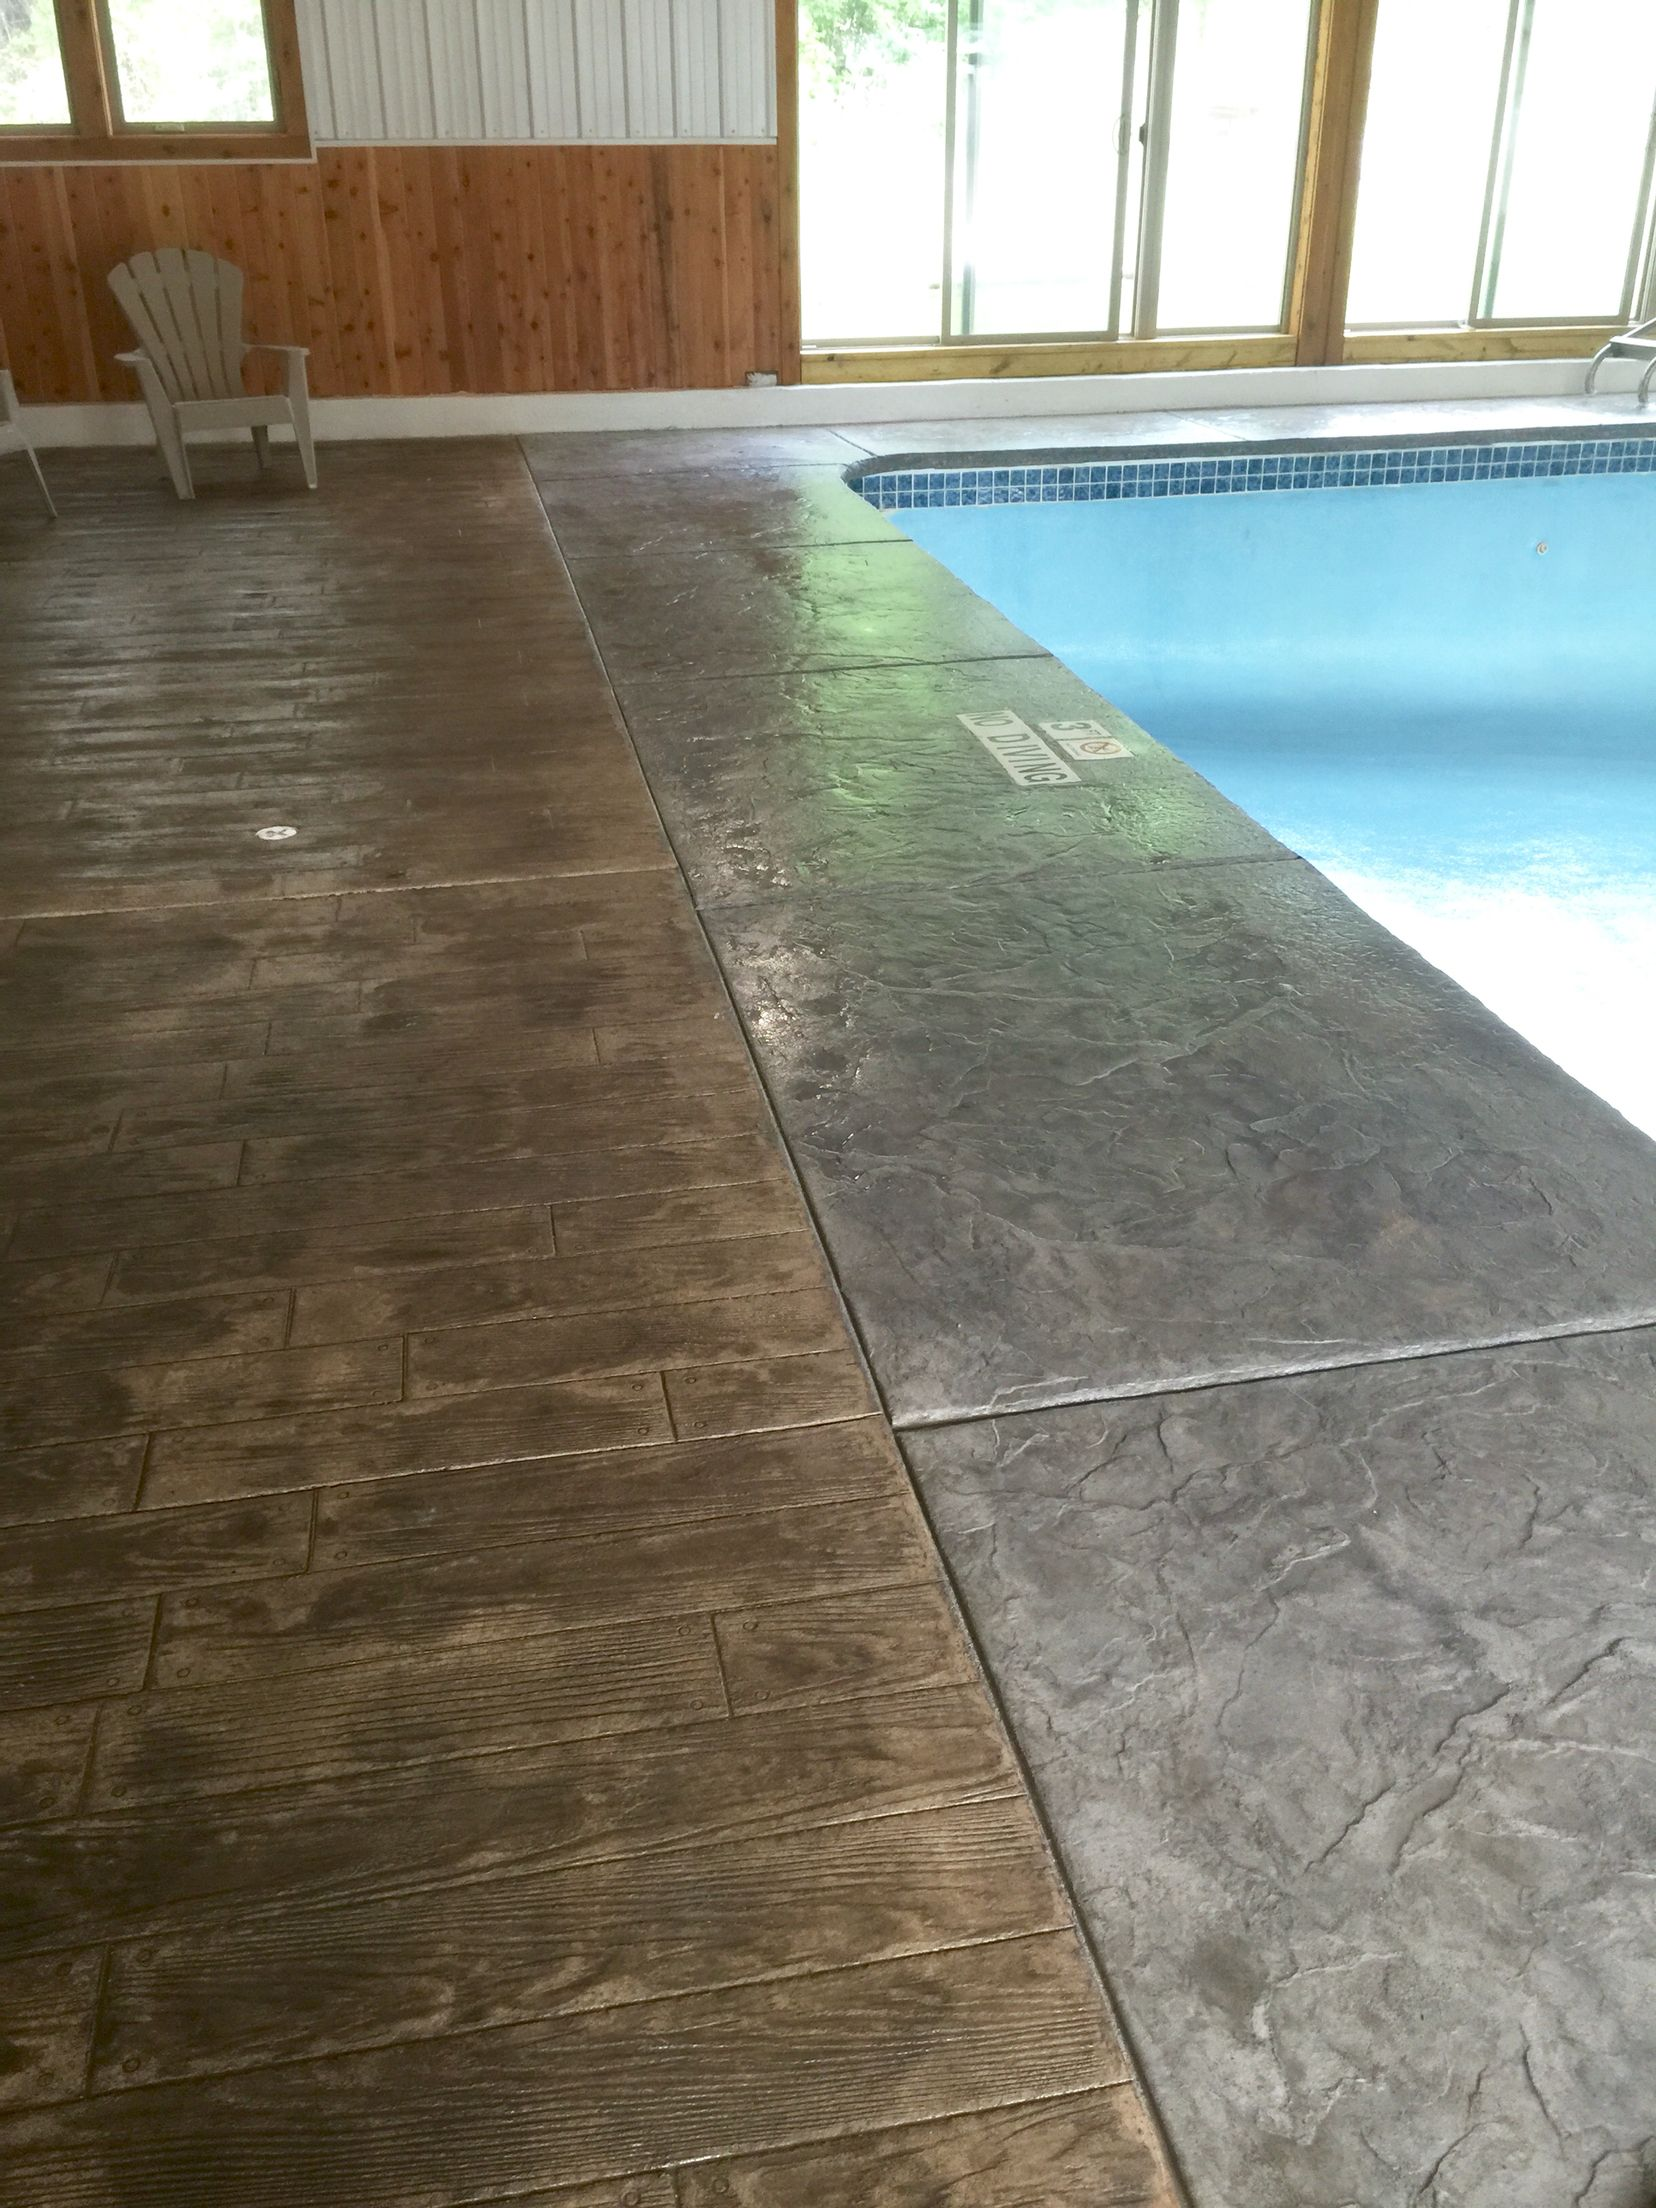 Tile Over Concrete Pool Deck Concrete Pool Coping  Calgacrete High Performance Concrete